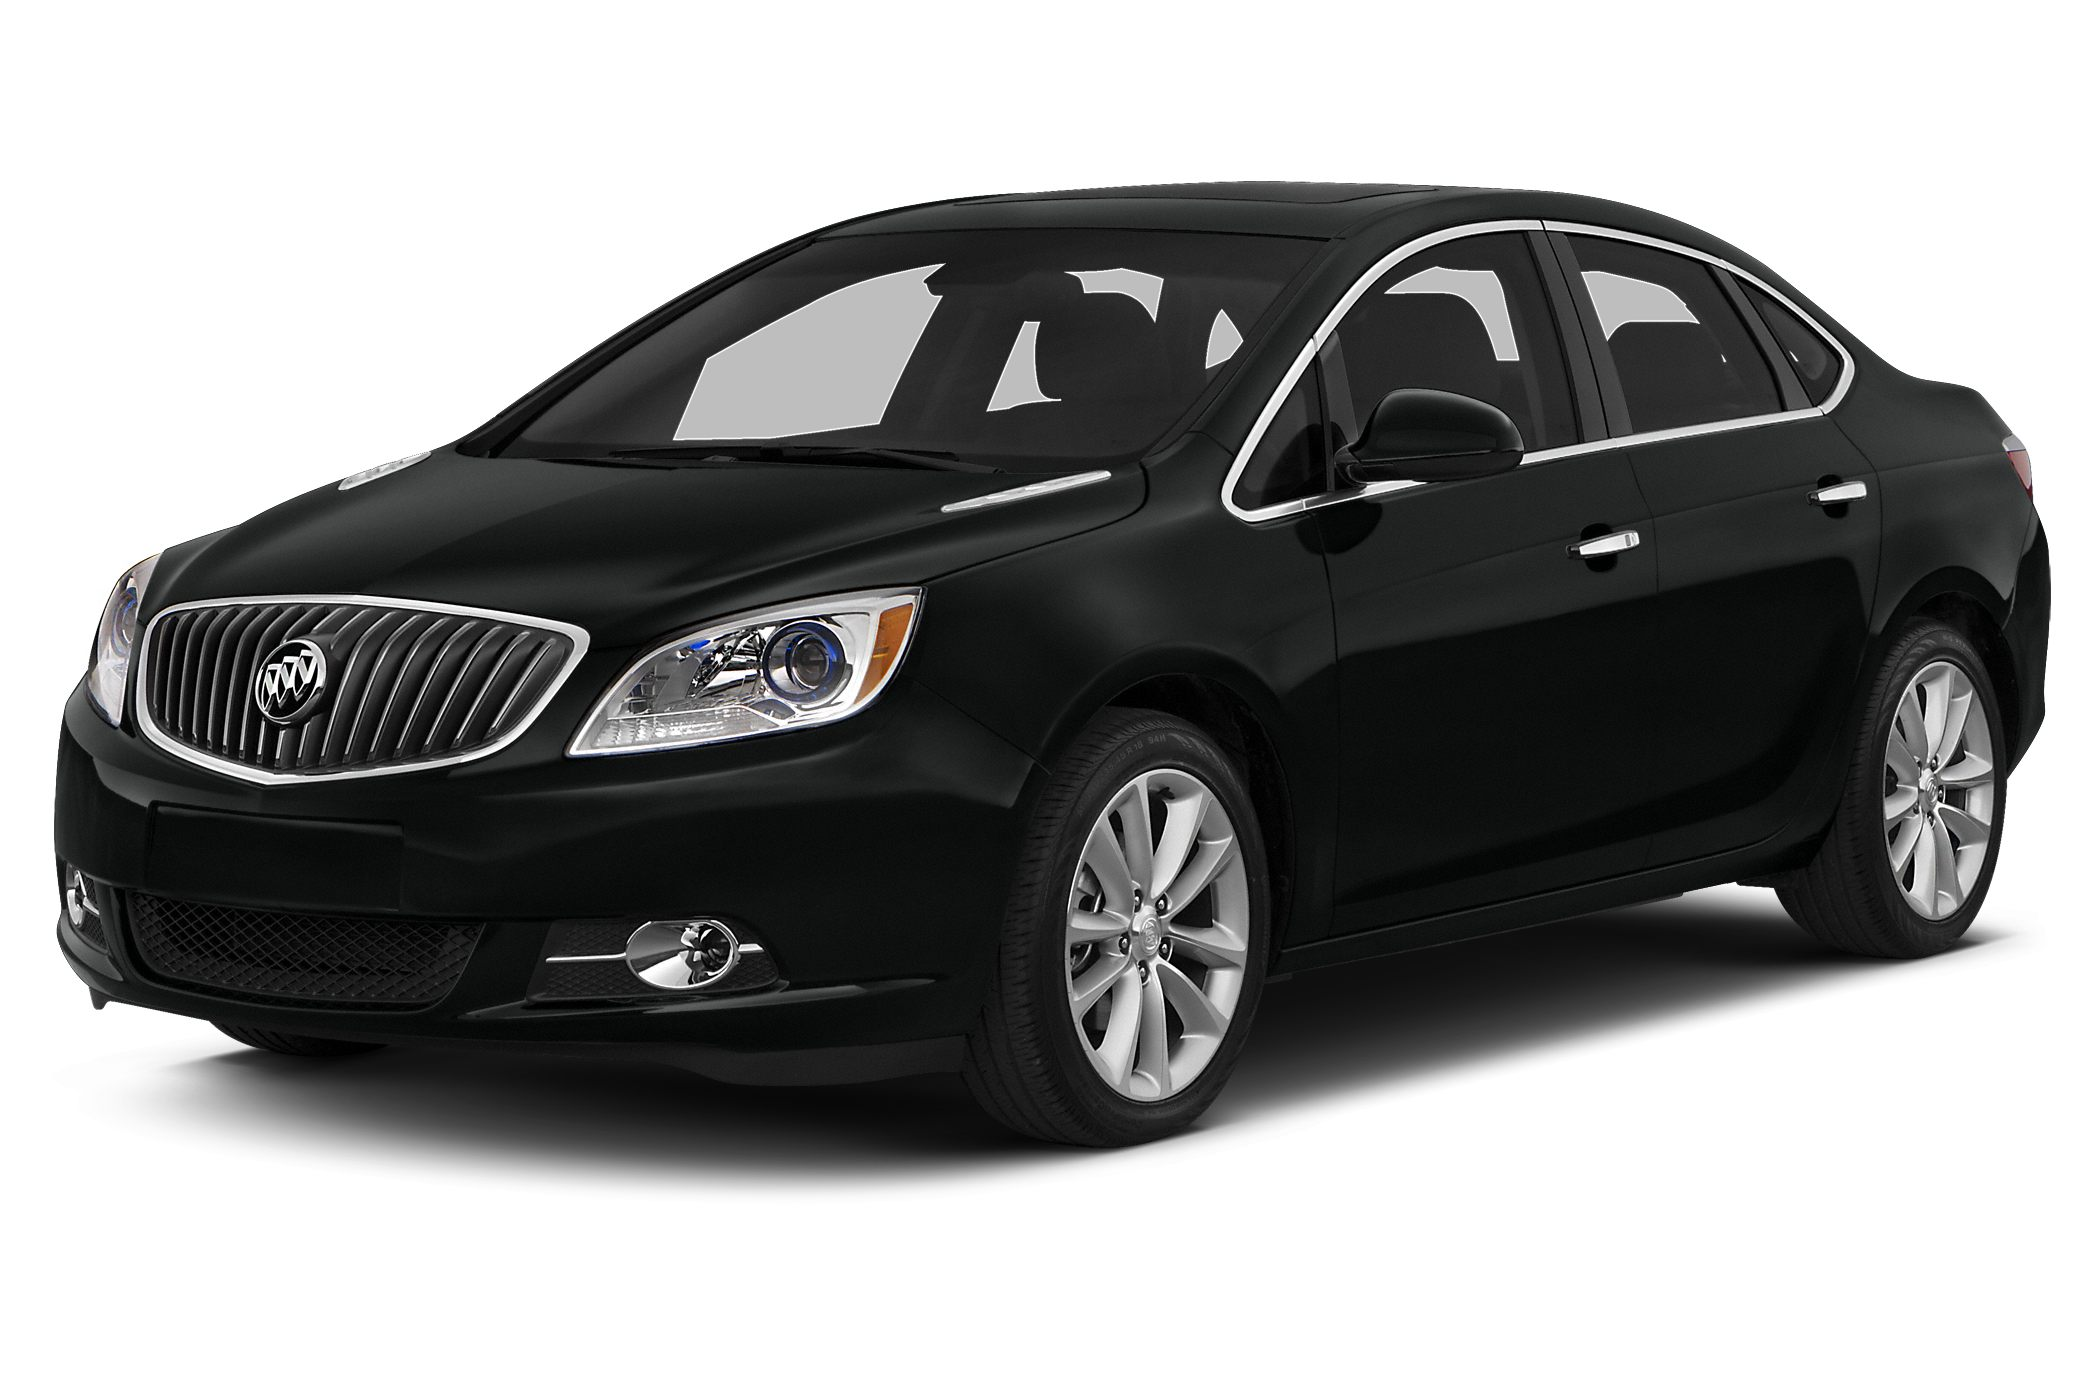 2014 Buick Verano Convenience Sedan for sale in Murphy for $27,400 with 10 miles